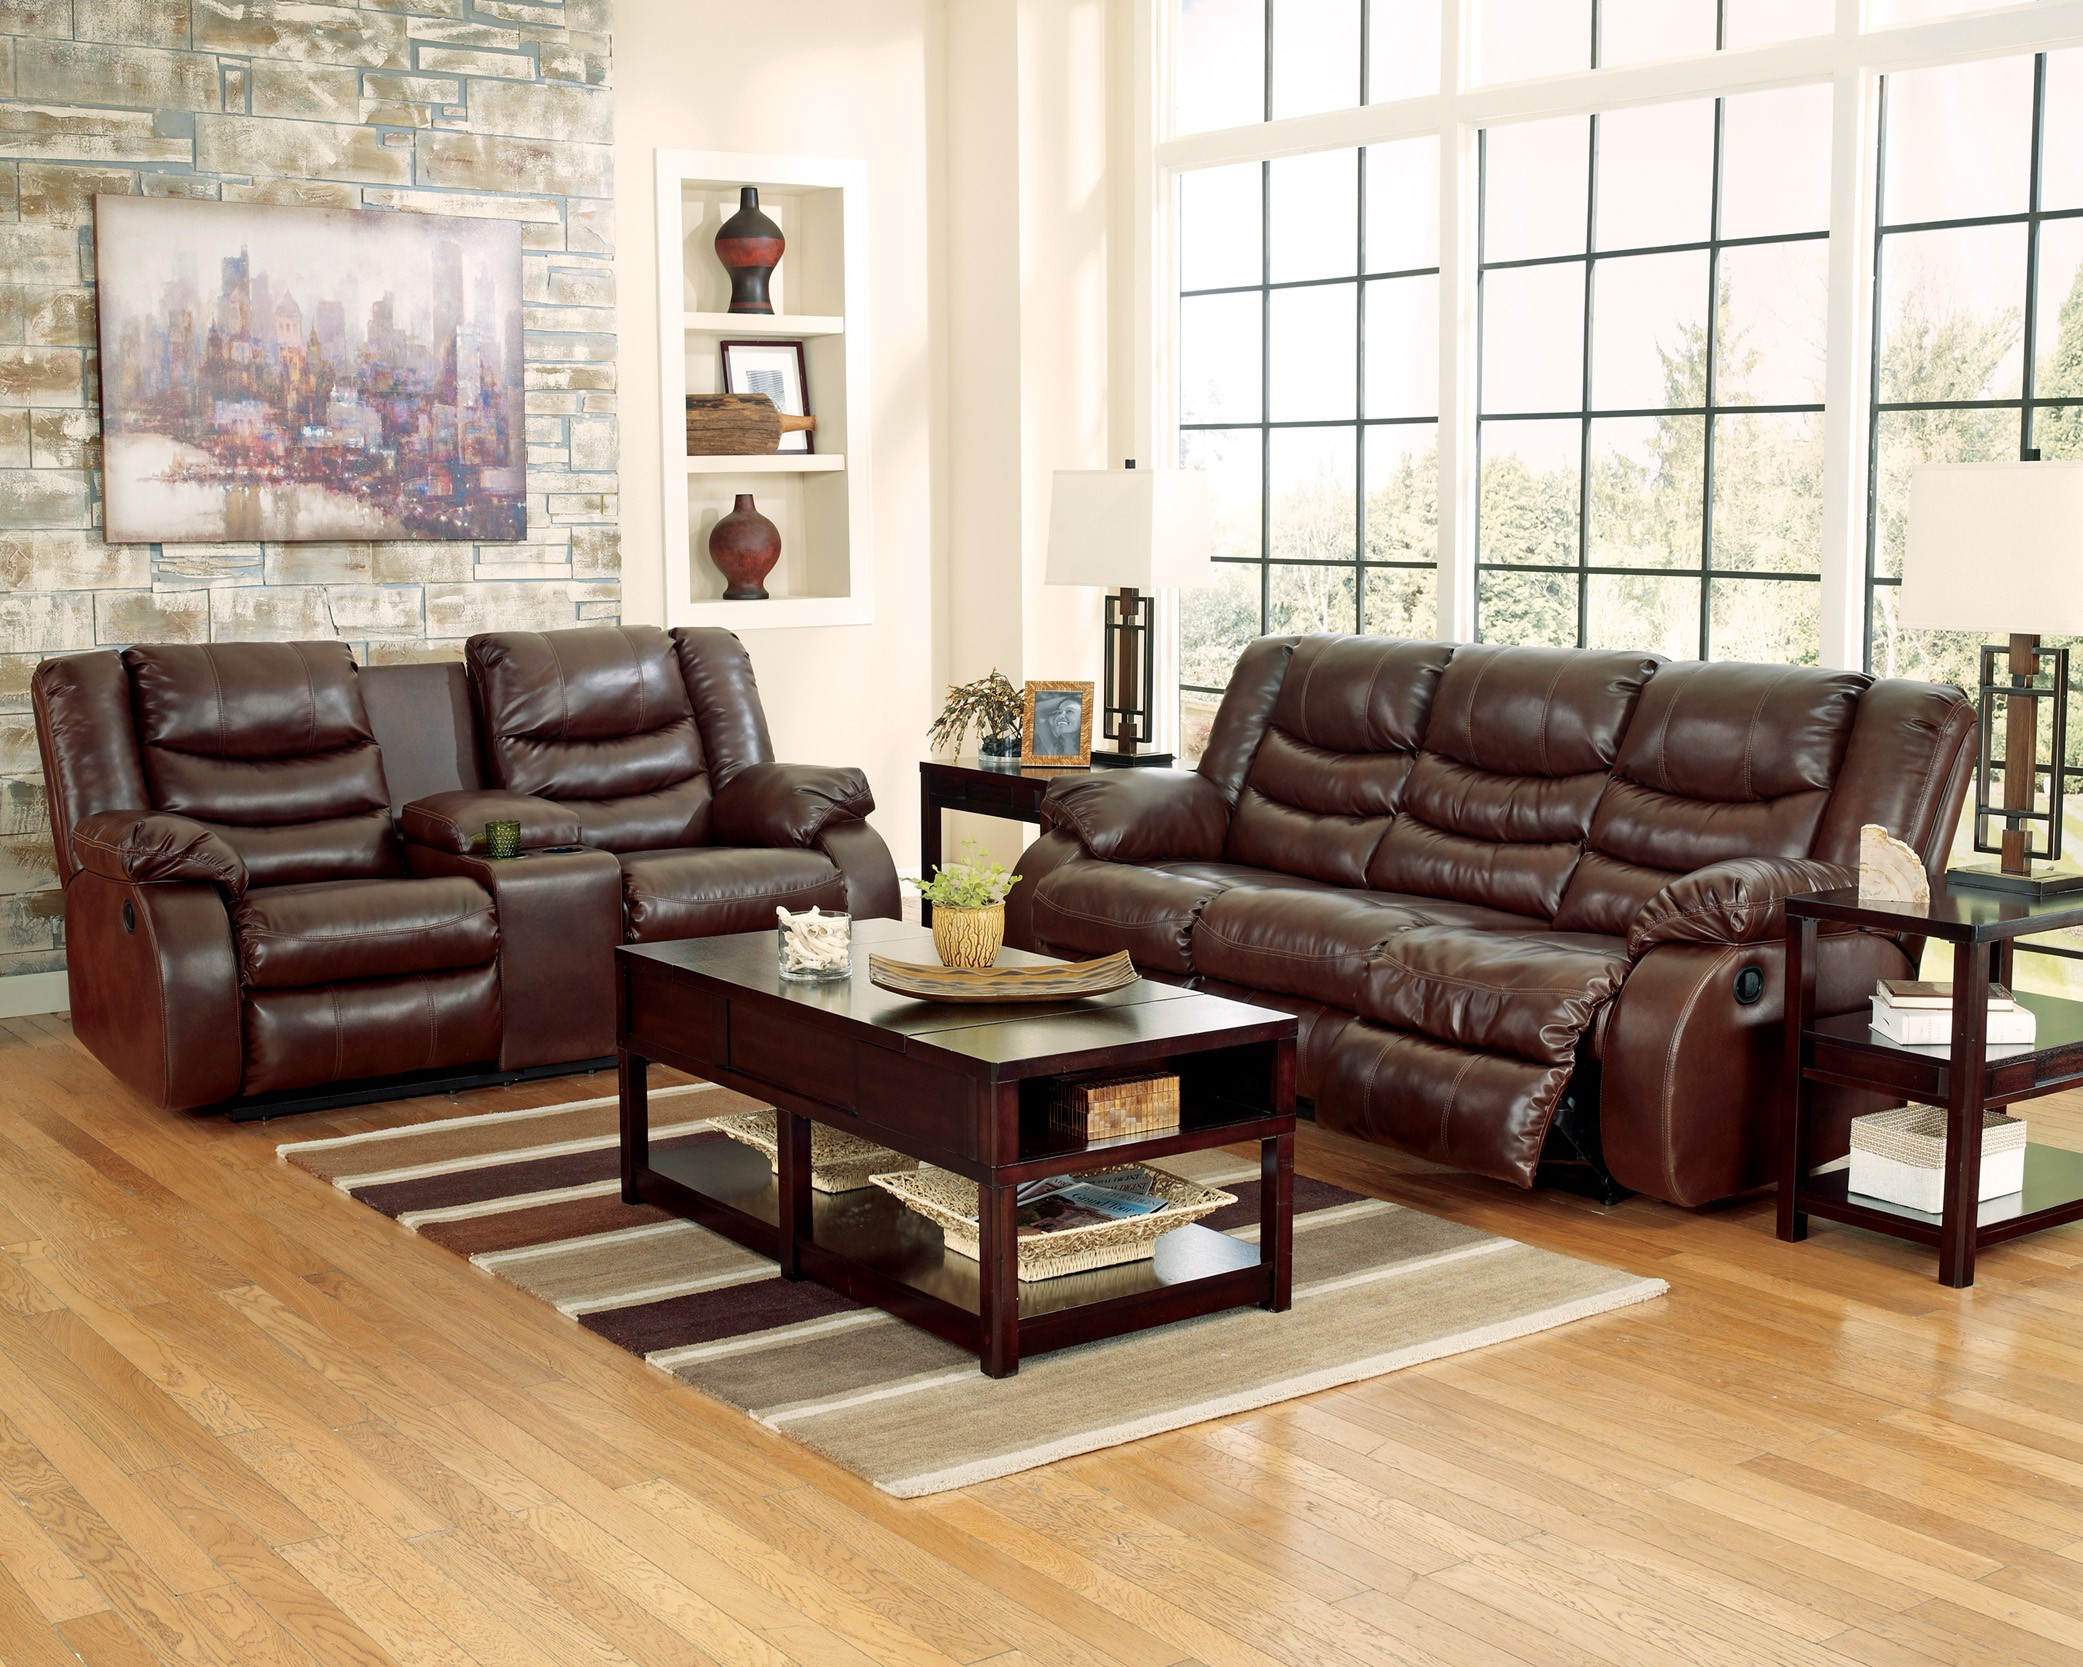 Leather Reclining Living Room Sets Linebacker Durablend Espresso Reclining Living Room Set From